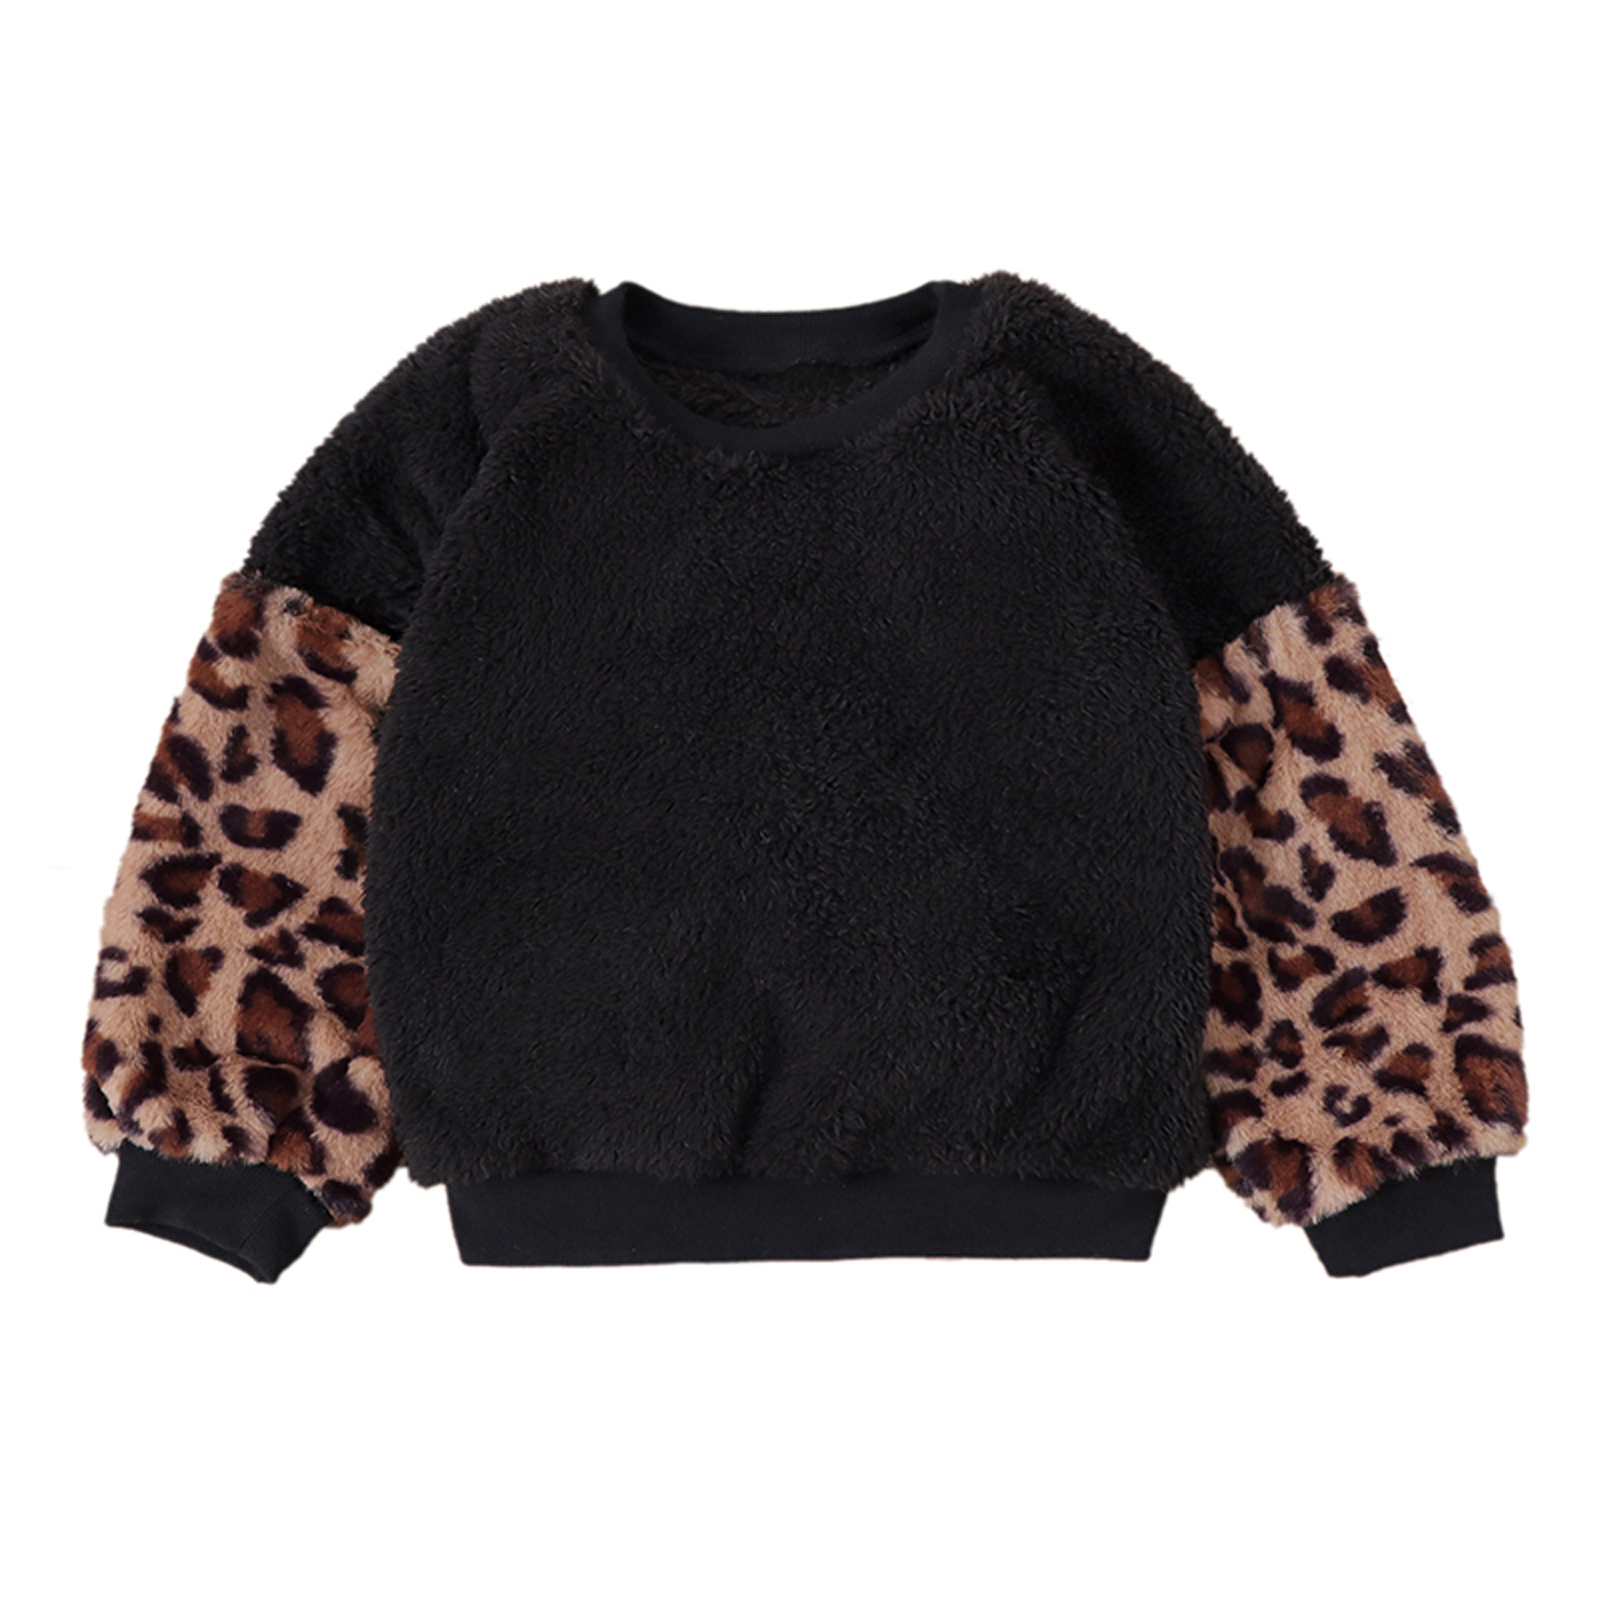 Autumn Winter Newly Baby Girls Boys Sweater Tops 3 Colors Fur Leopard Patchwork Long Lantern Sleeve Pullover Tops 2-7Y